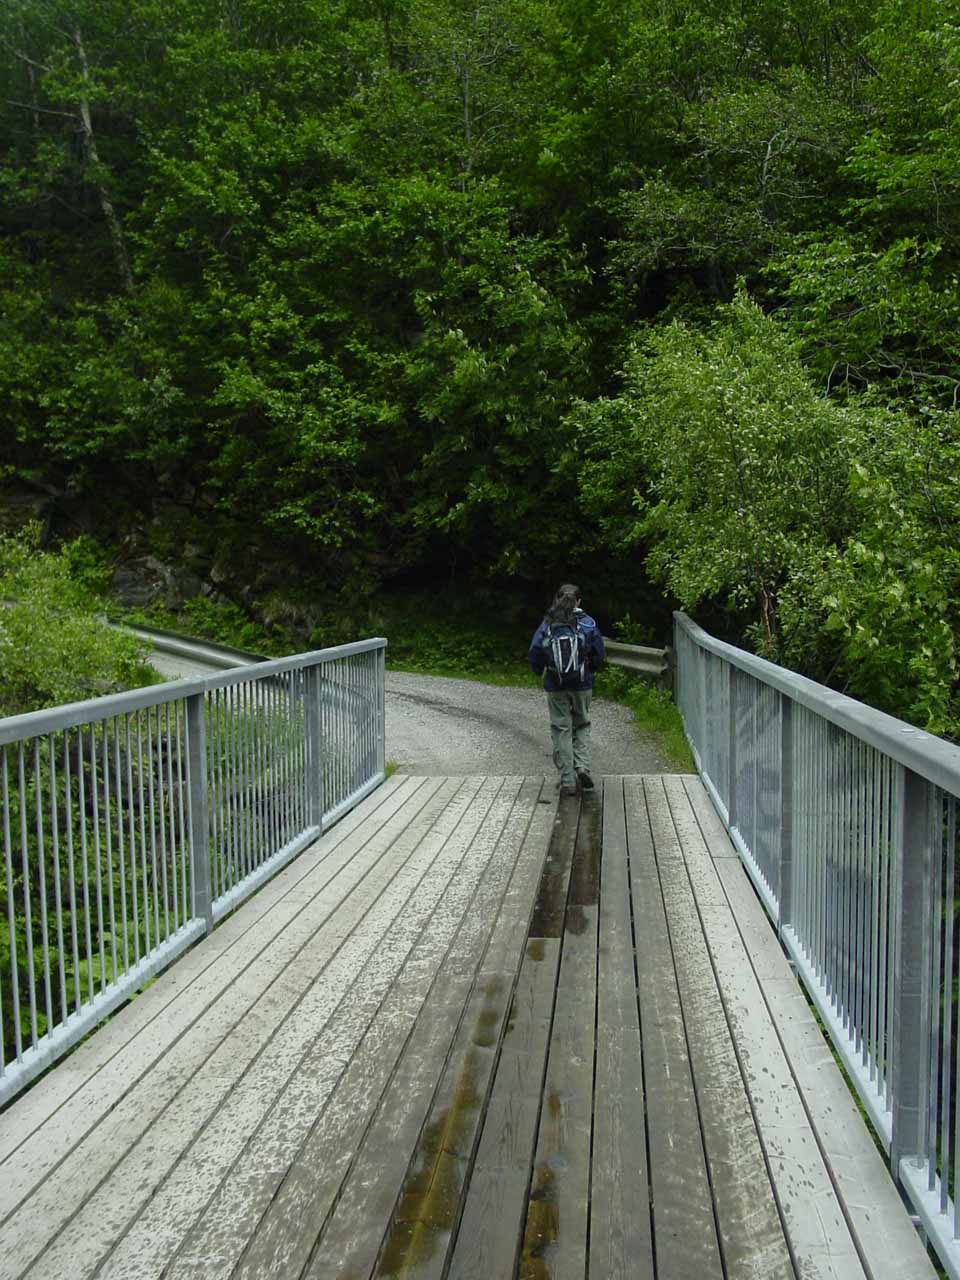 Julie about to finish crossing another bridge as we left the Utladalen Naturhus